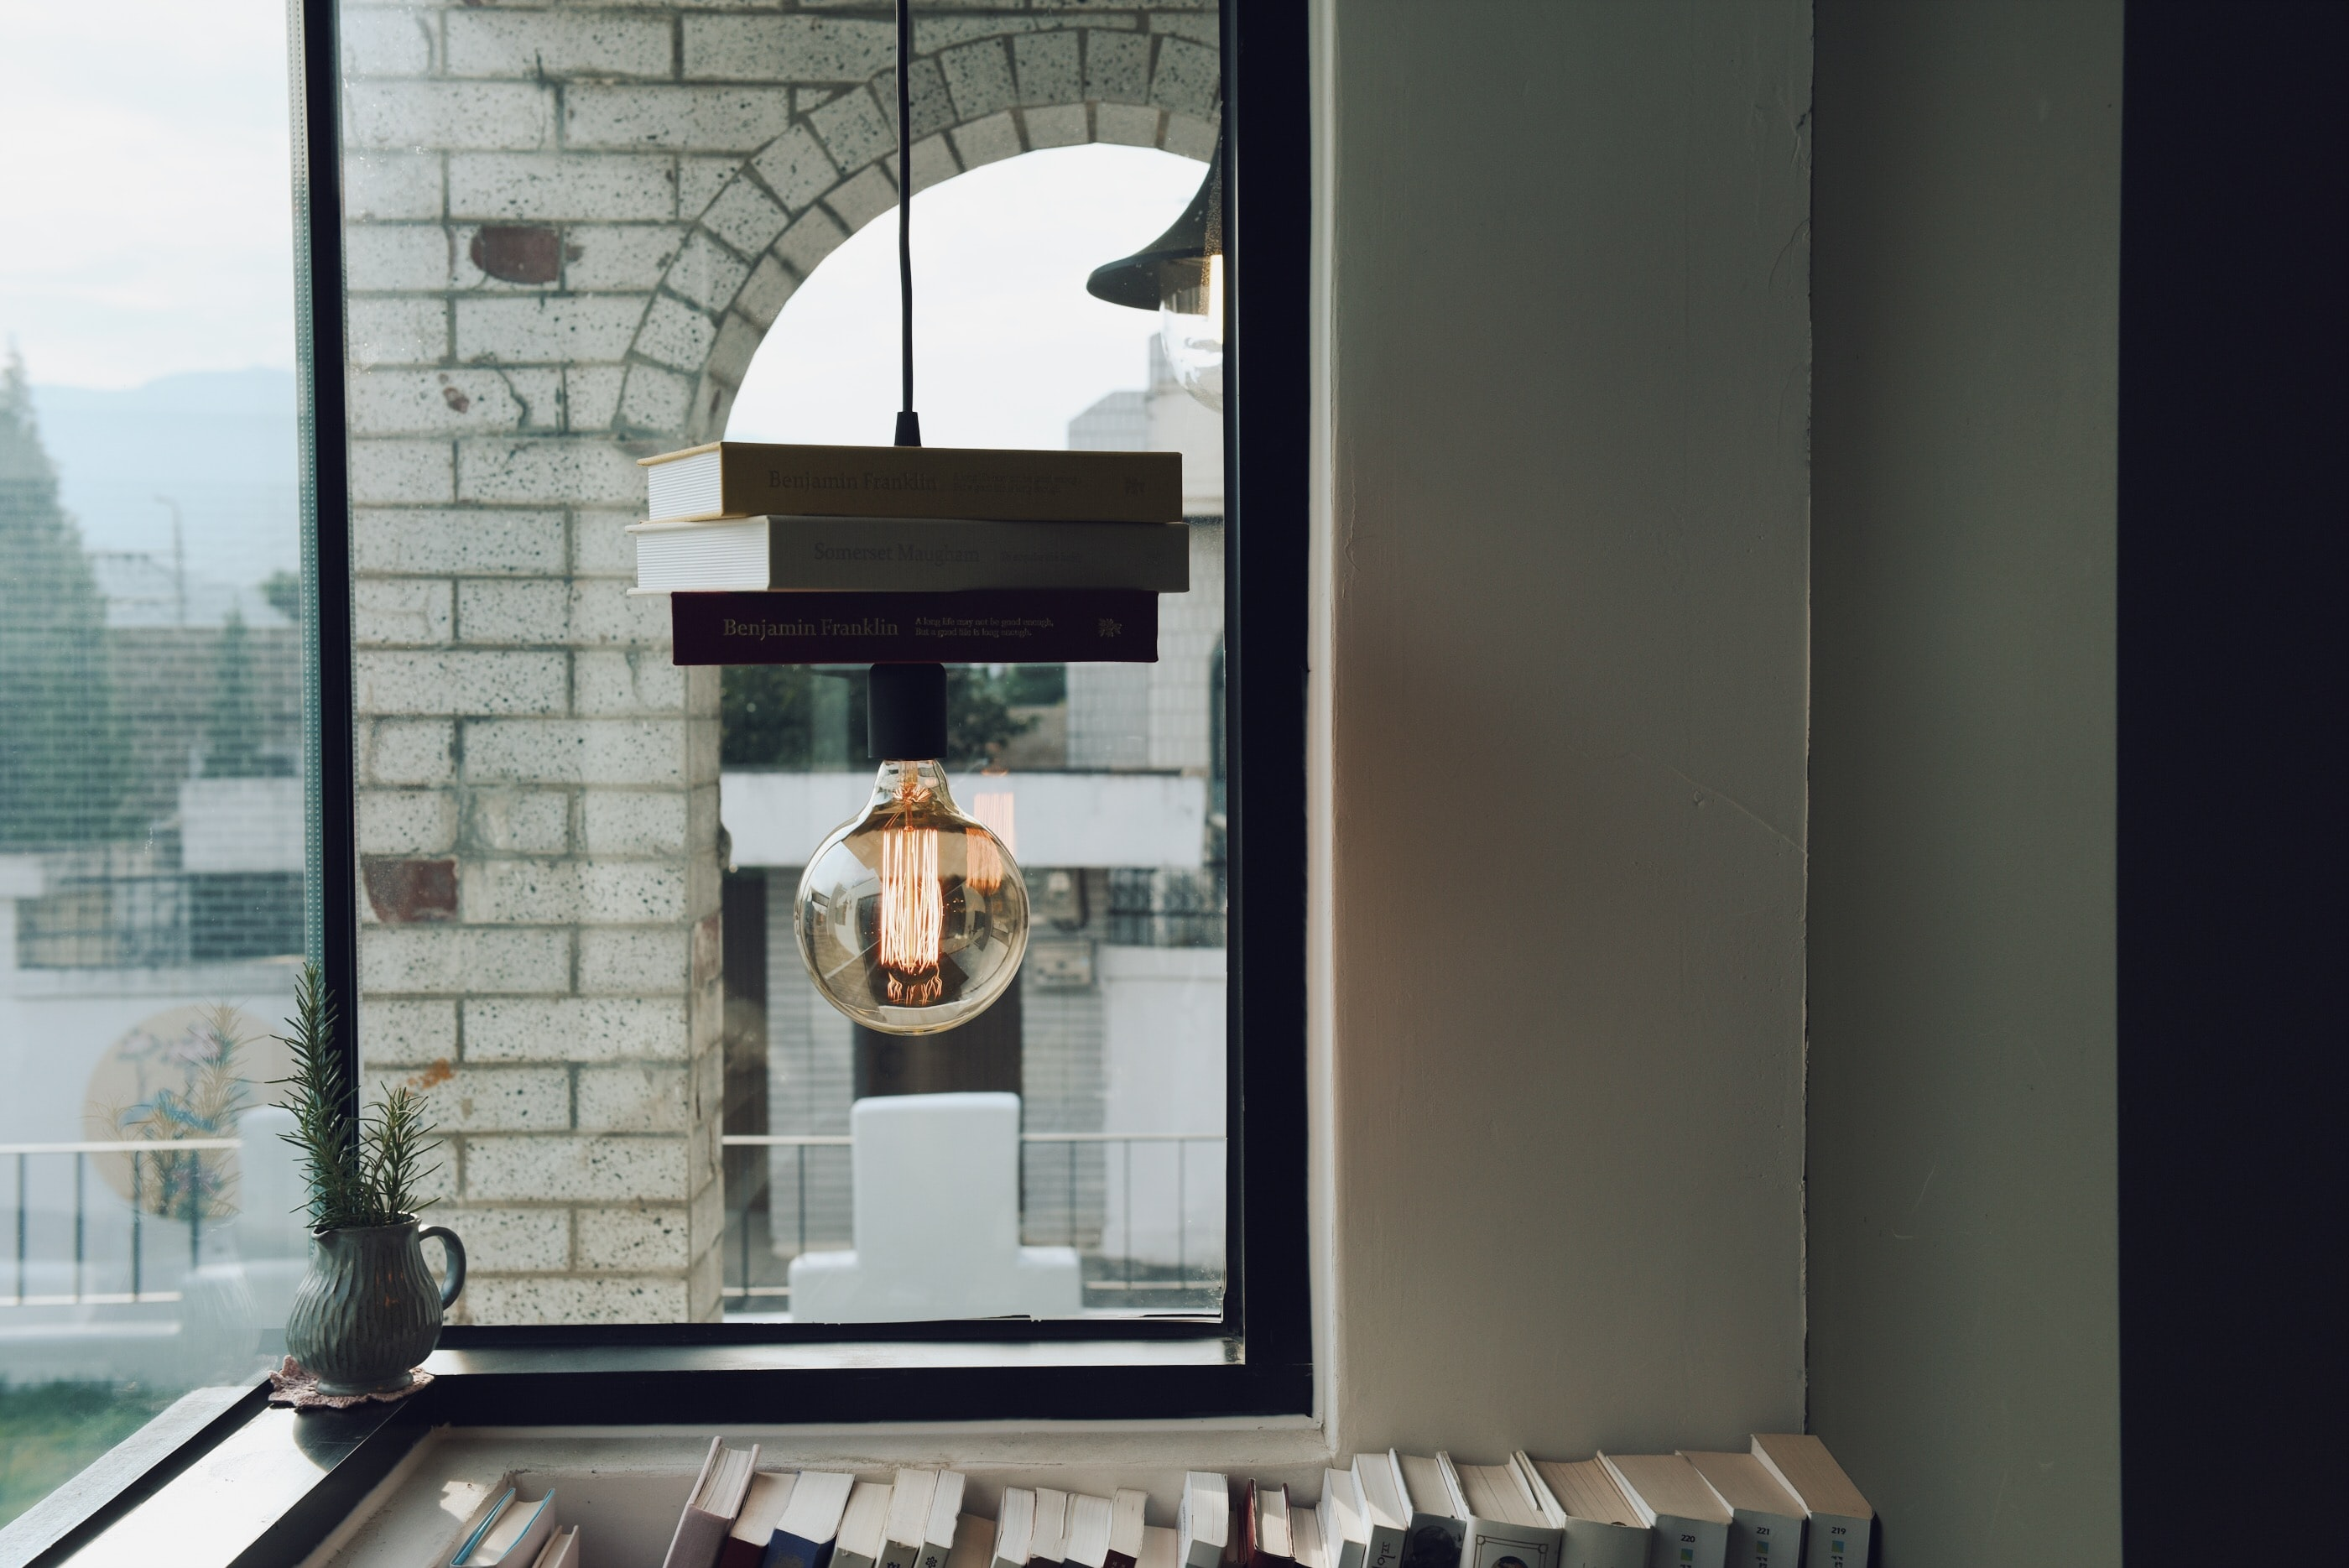 Lightbulb hangs from suspended books in a room with windows and a white brick building outside